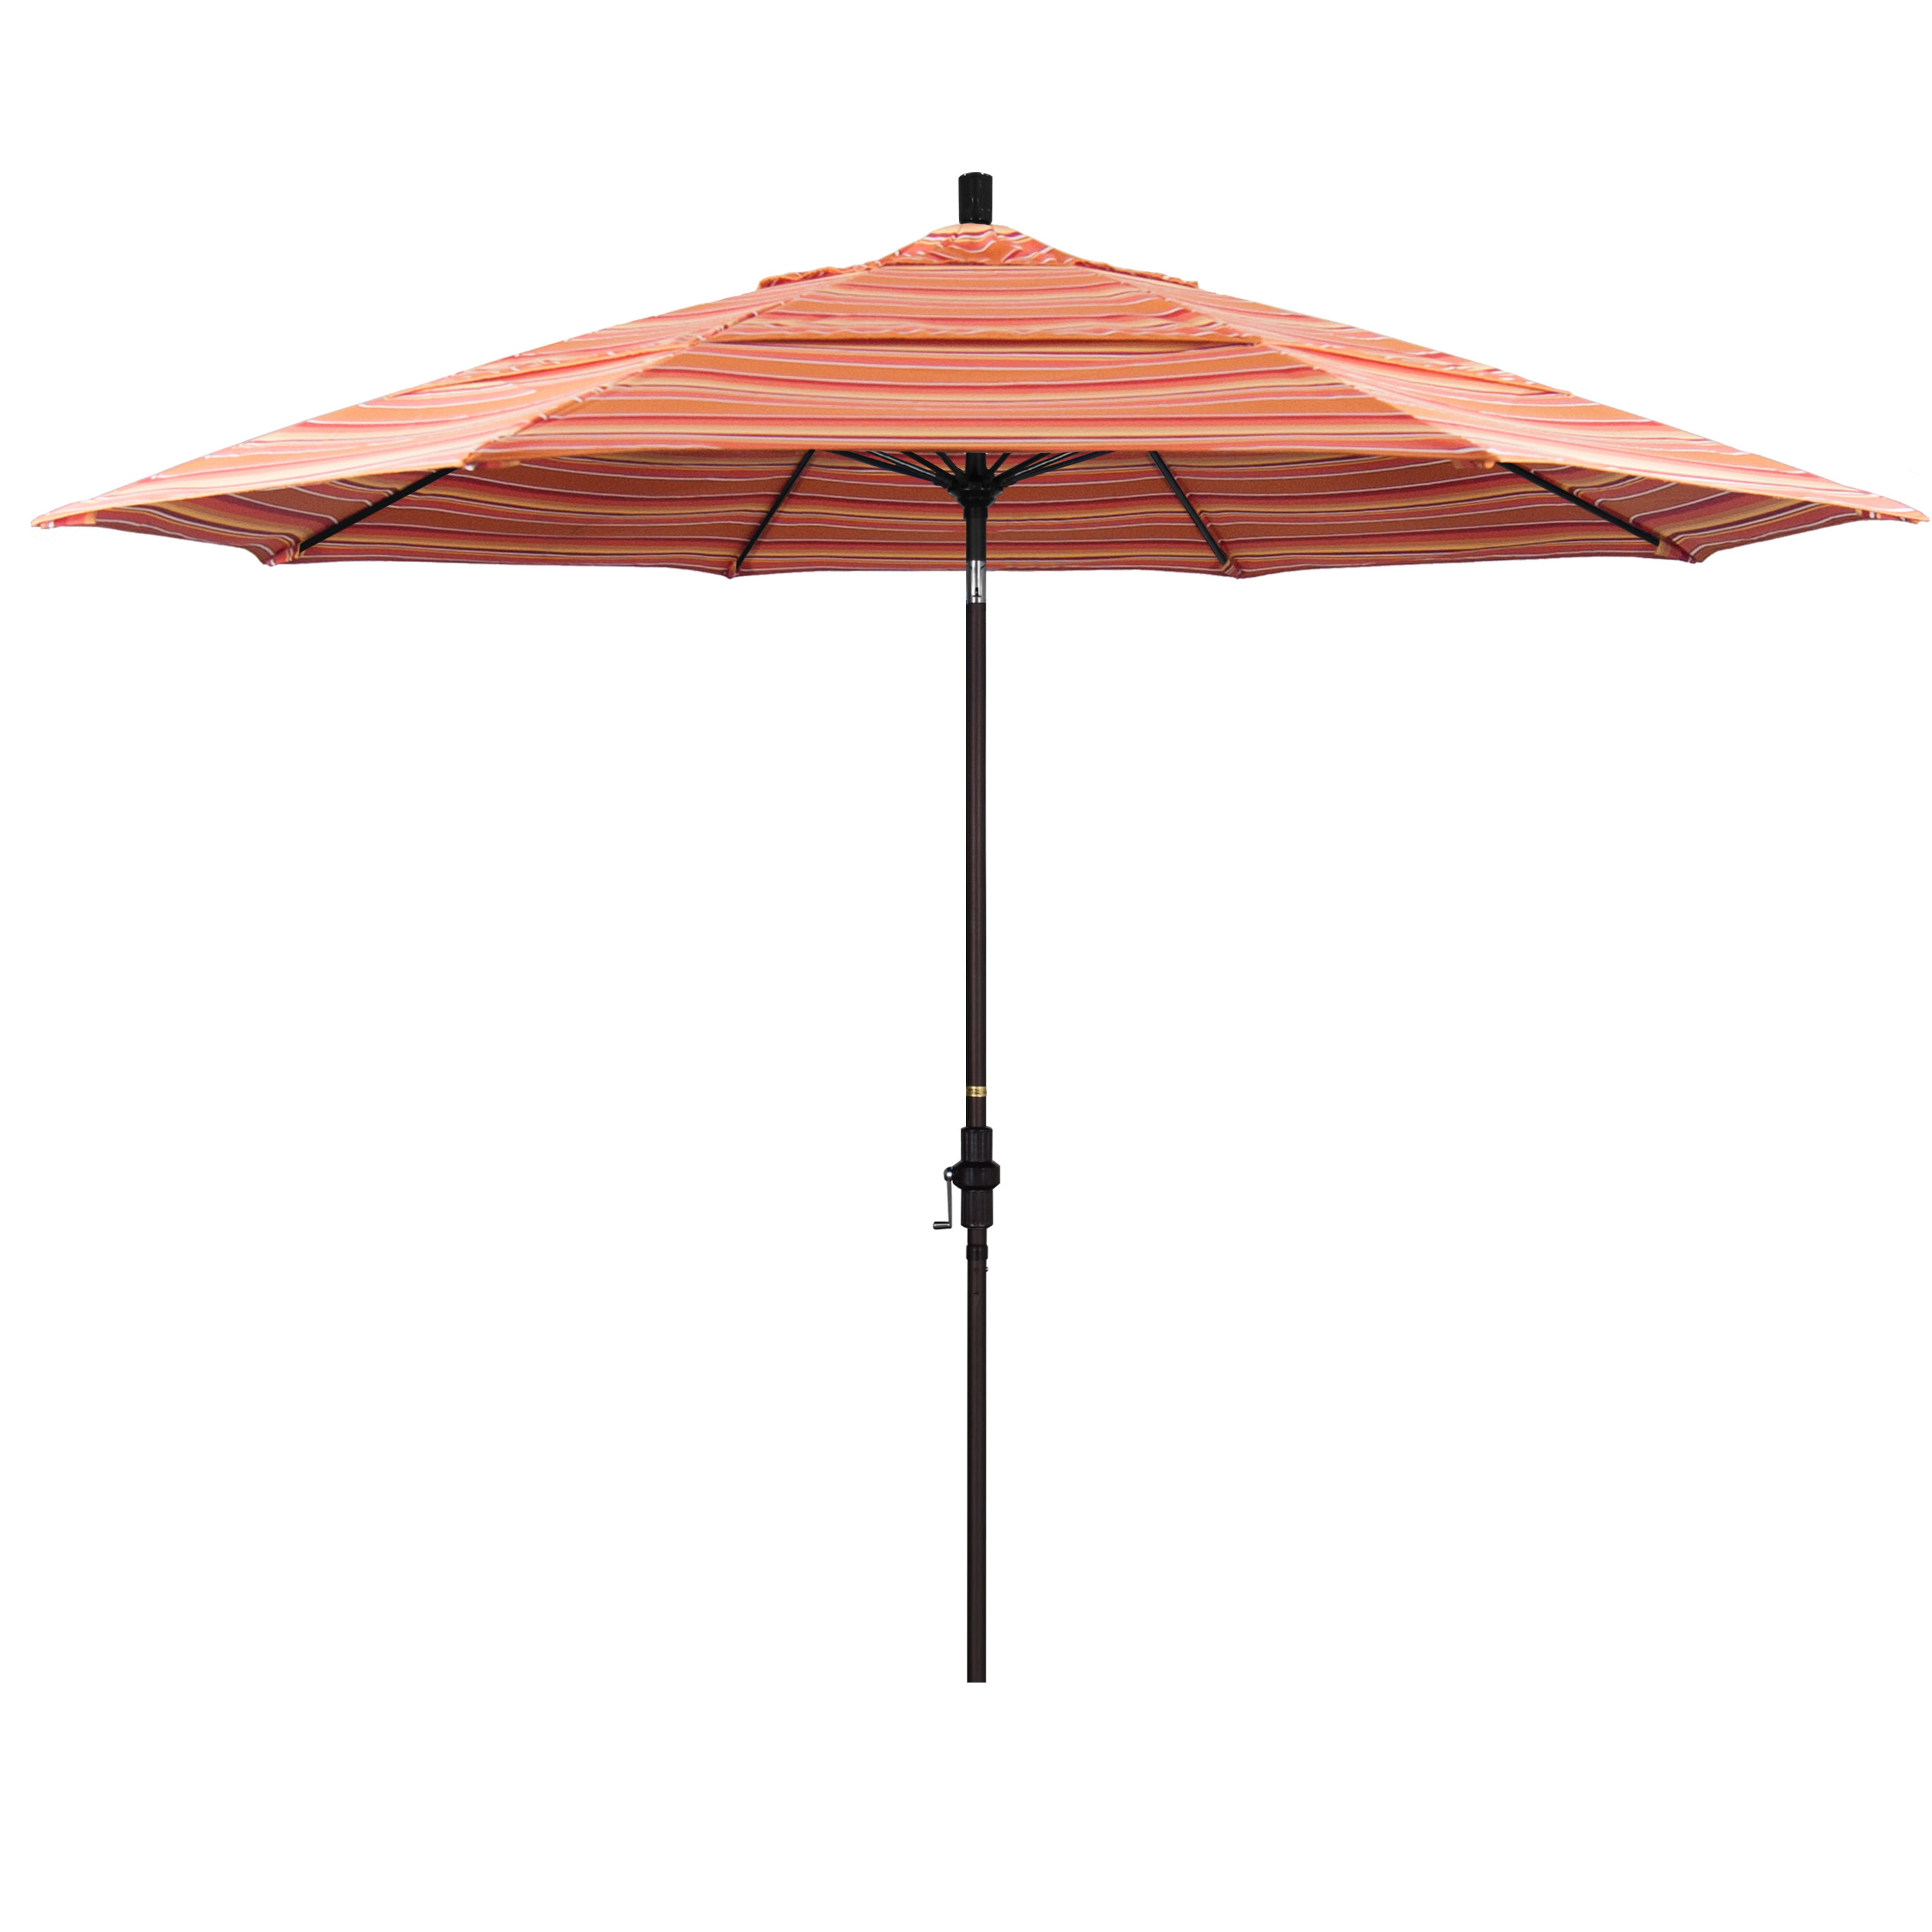 Muldoon 11' Market Sunbrella Umbrella Throughout Popular Featherste Market Umbrellas (View 2 of 20)